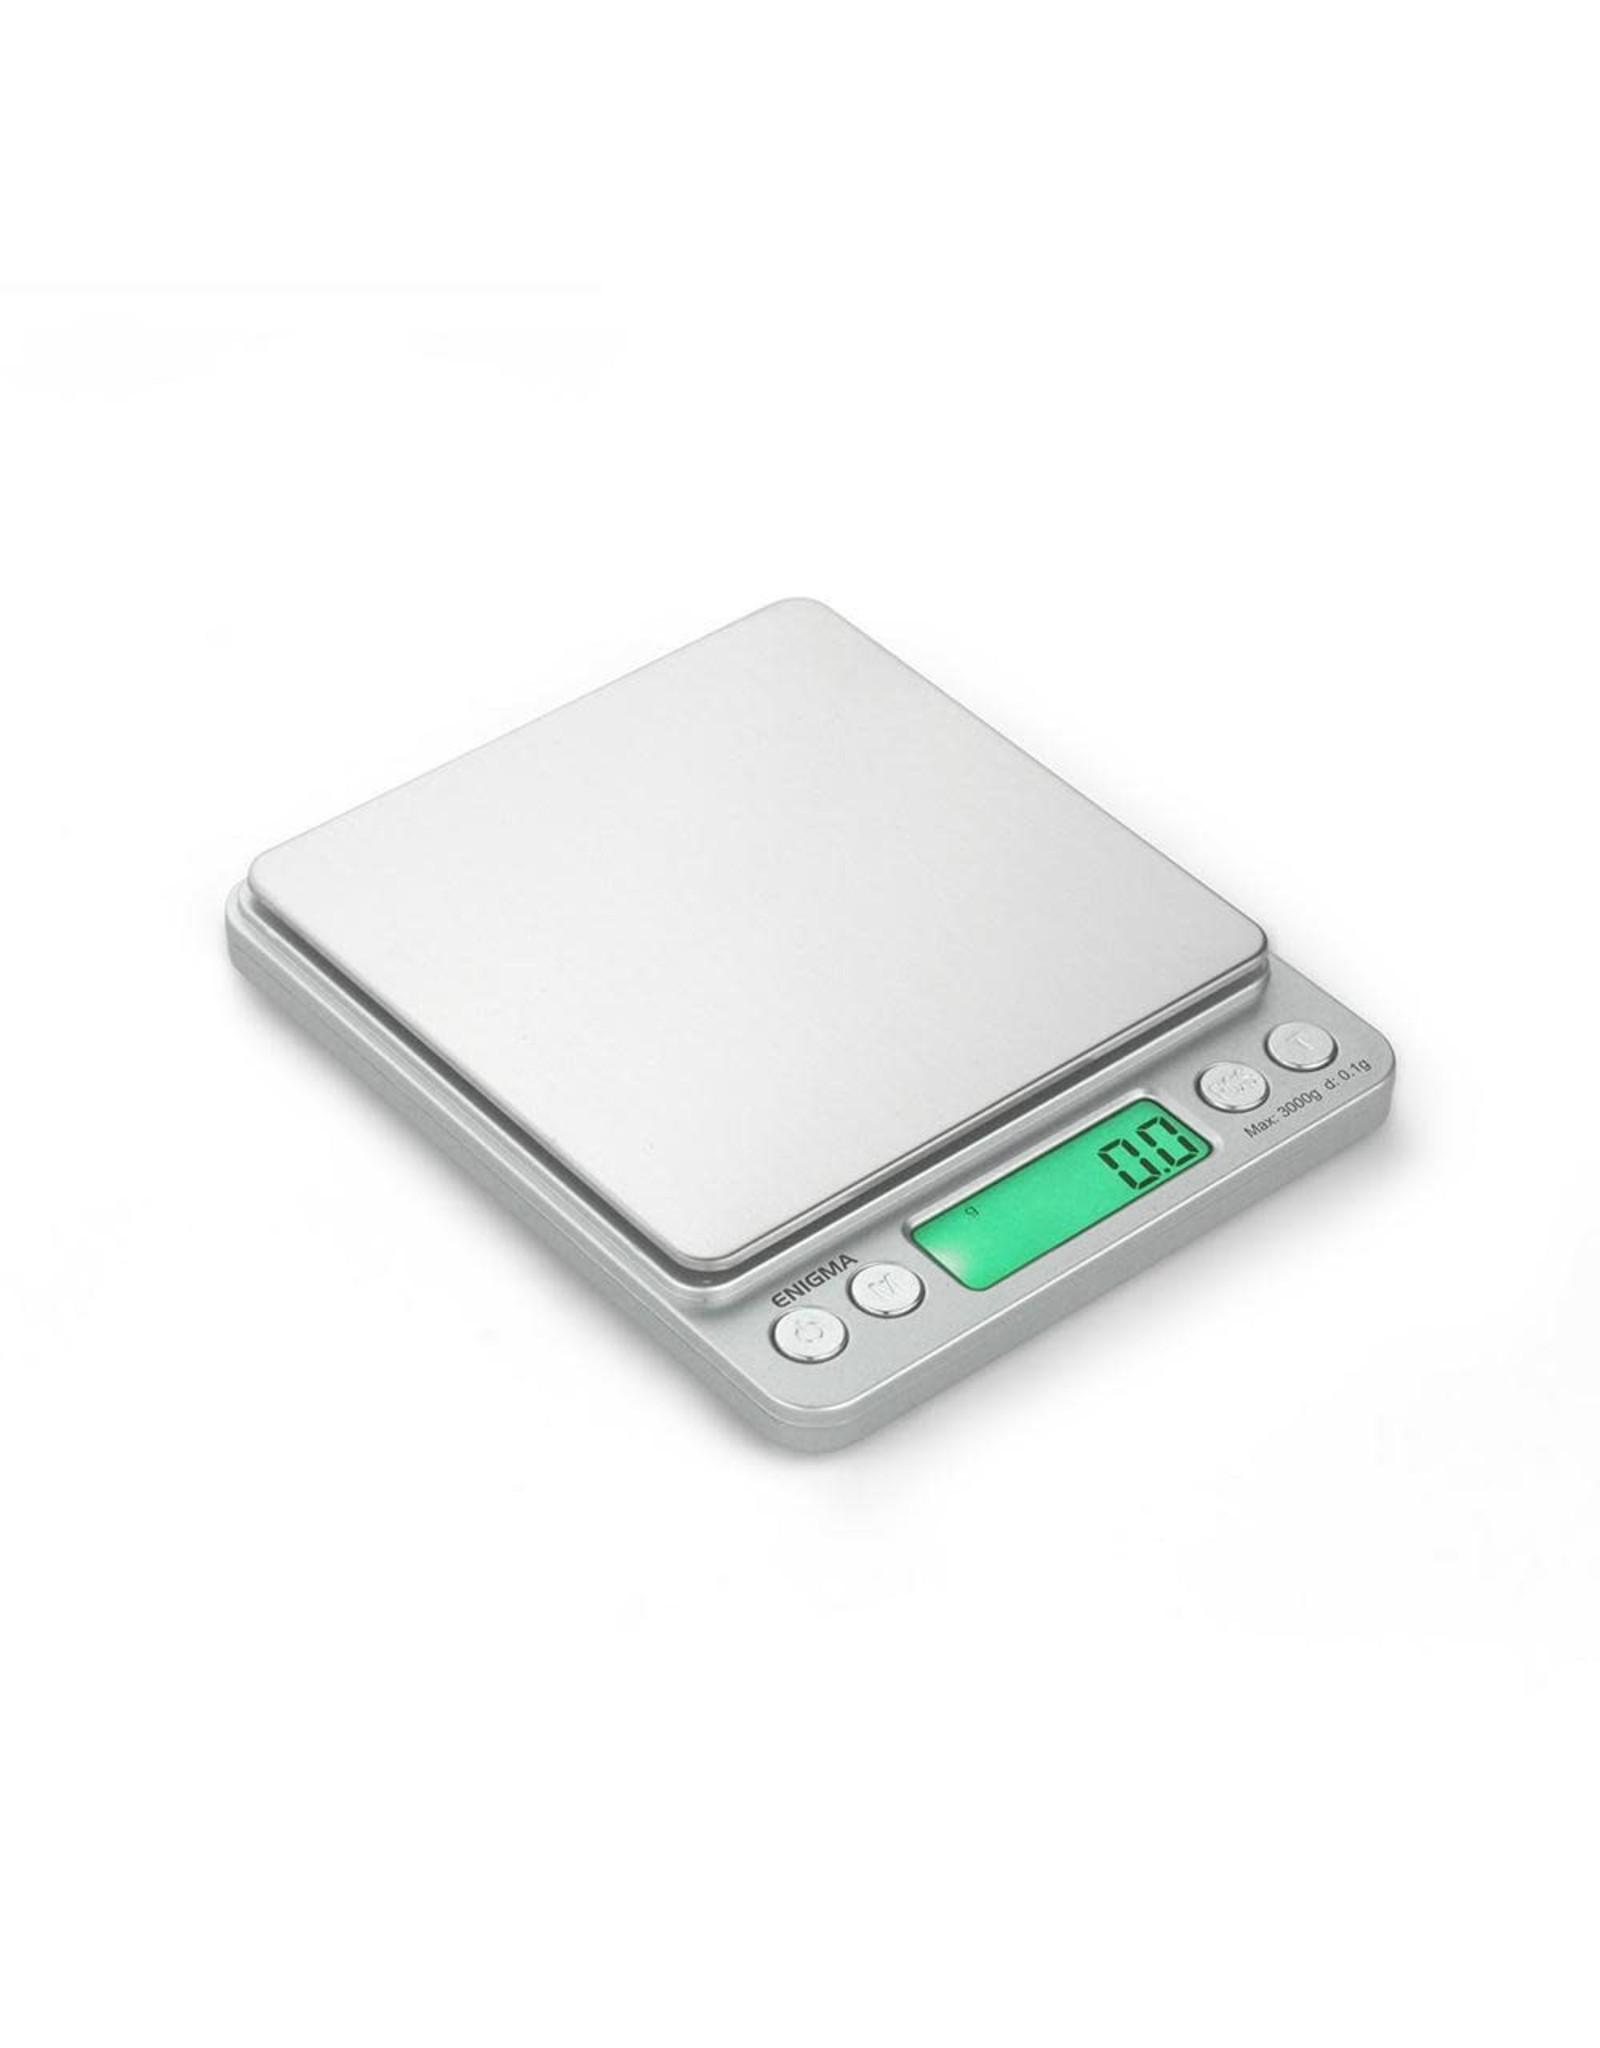 truweigh Truweigh Enigma Digital Mini Scale - 3000g x 0.1g / Silver